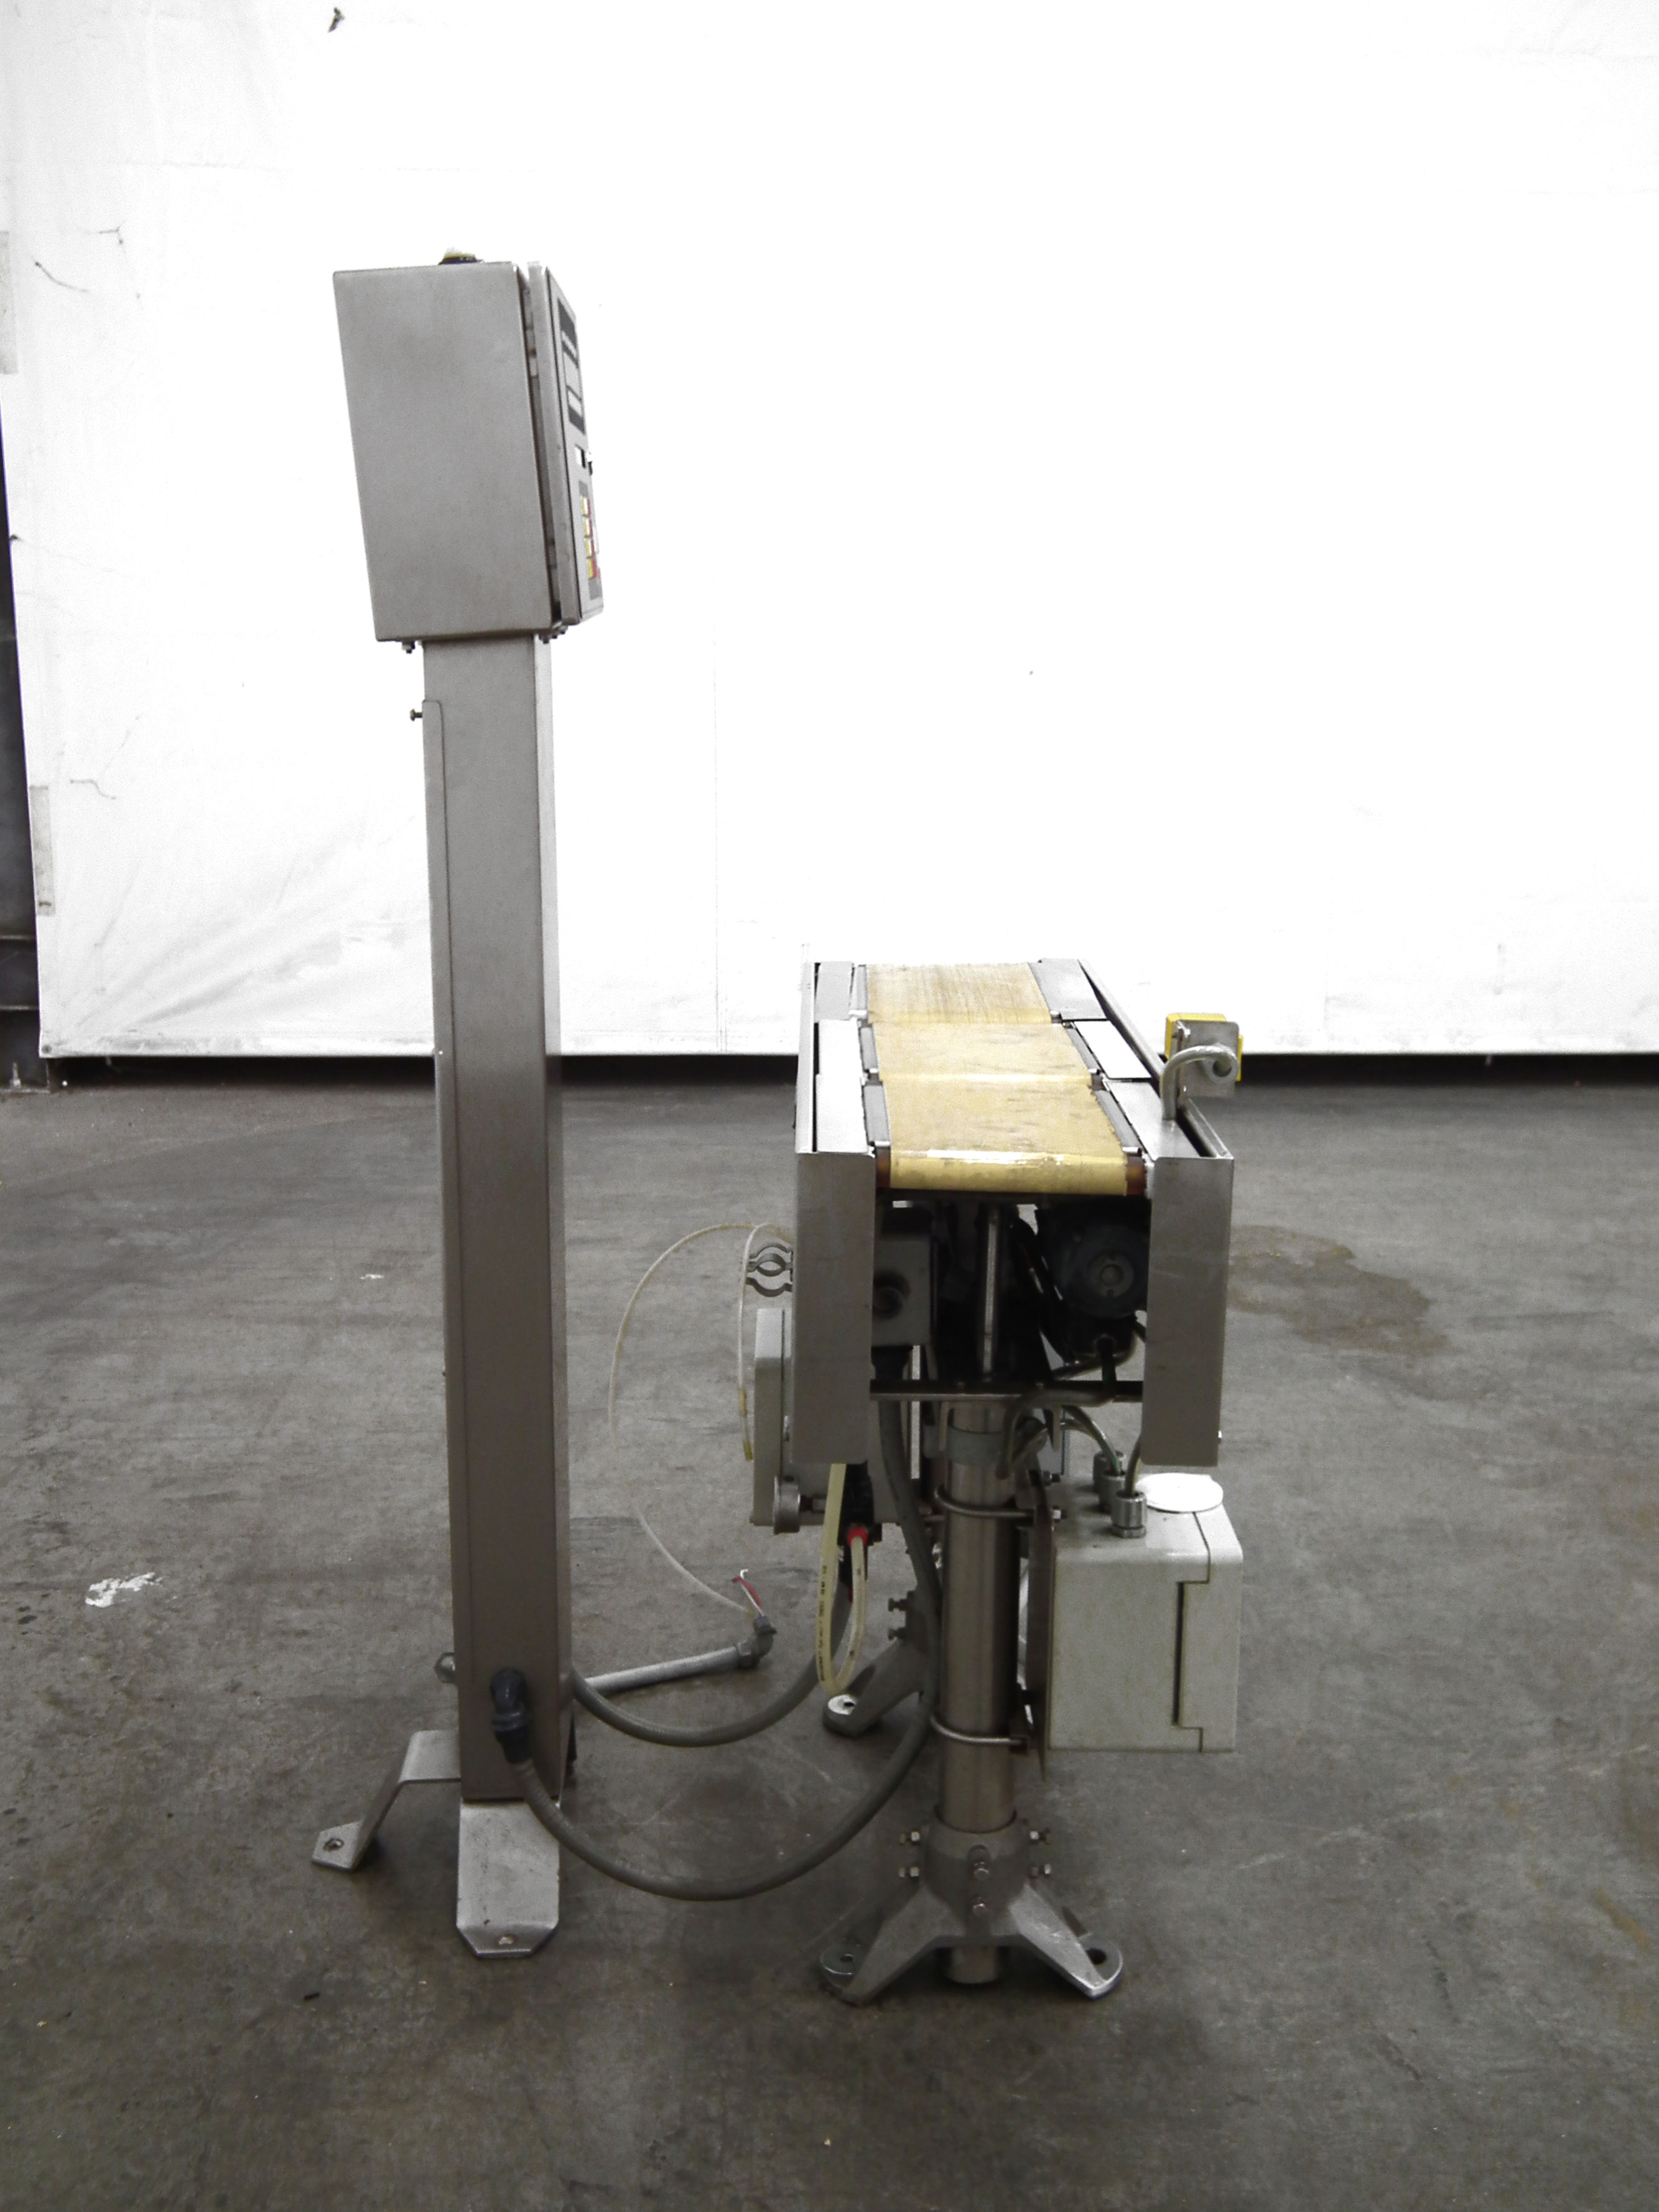 Mettler Toledo Micromate High Speed Checkweigher B3155 - Image 5 of 9